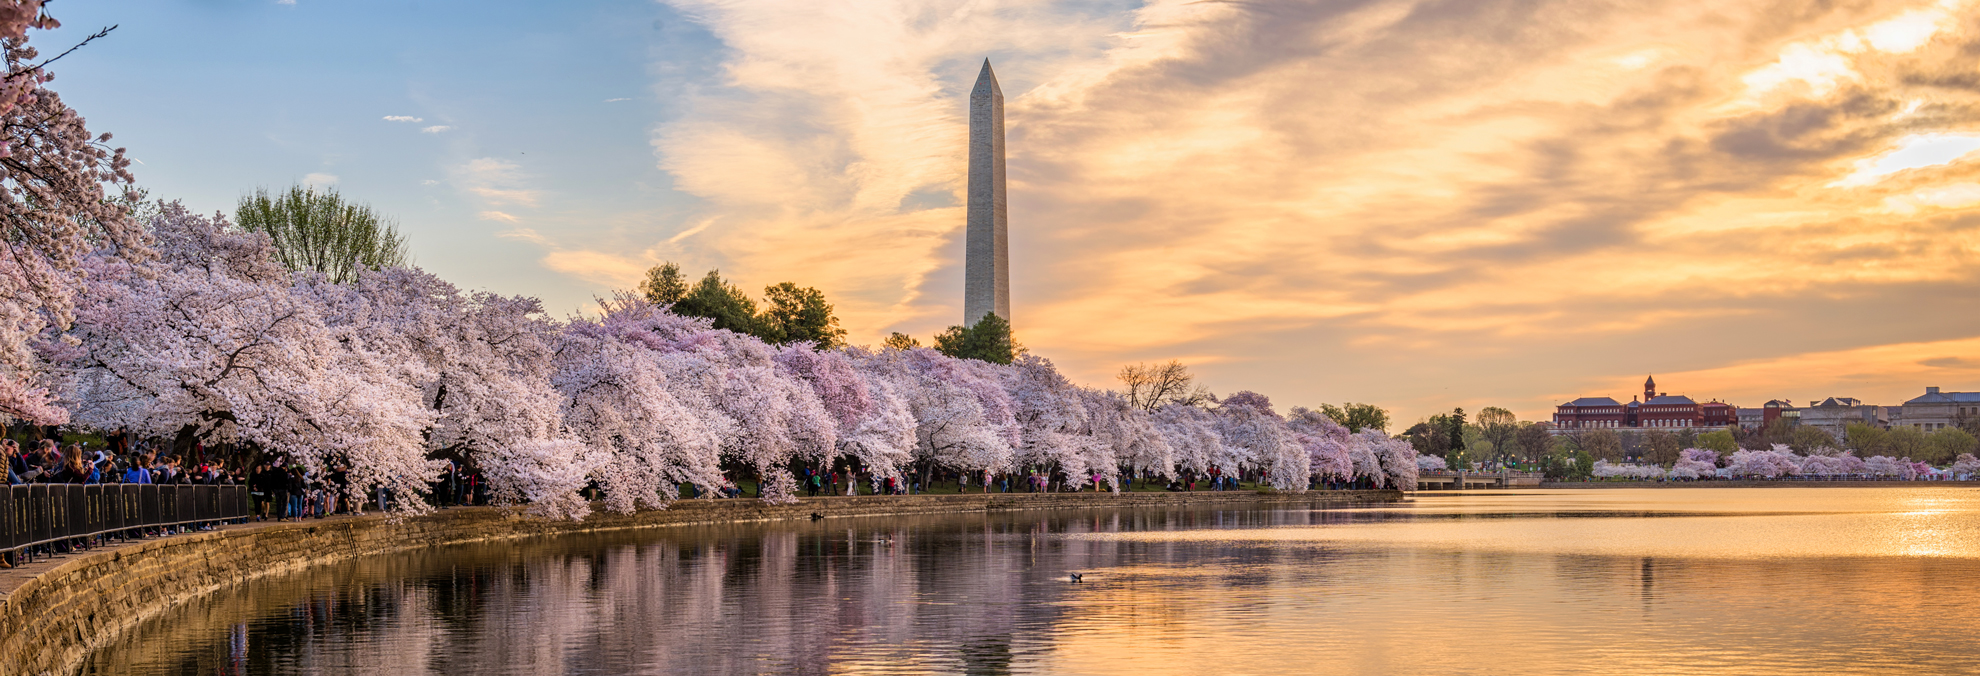 Hotels near Washington DC sights